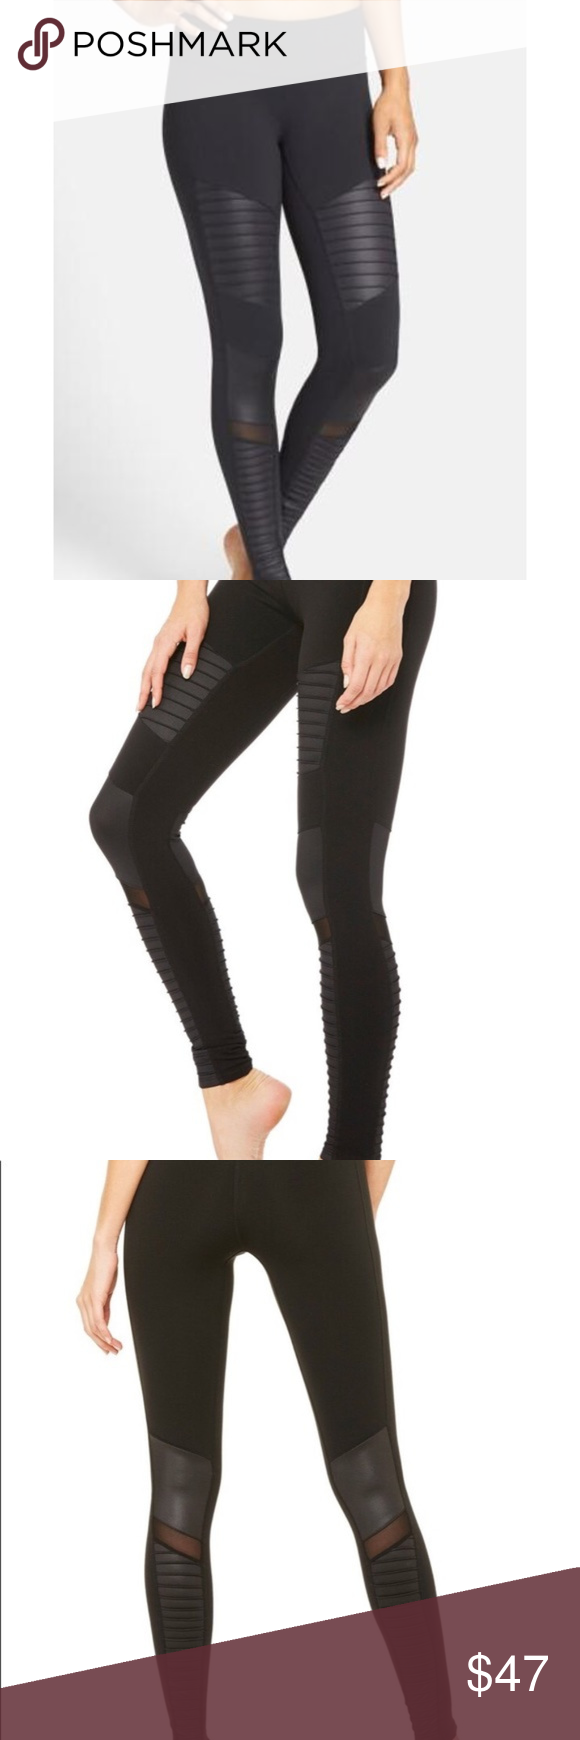 price firm Alo yoga pants leggings VN#3158 has pillings in some places,on